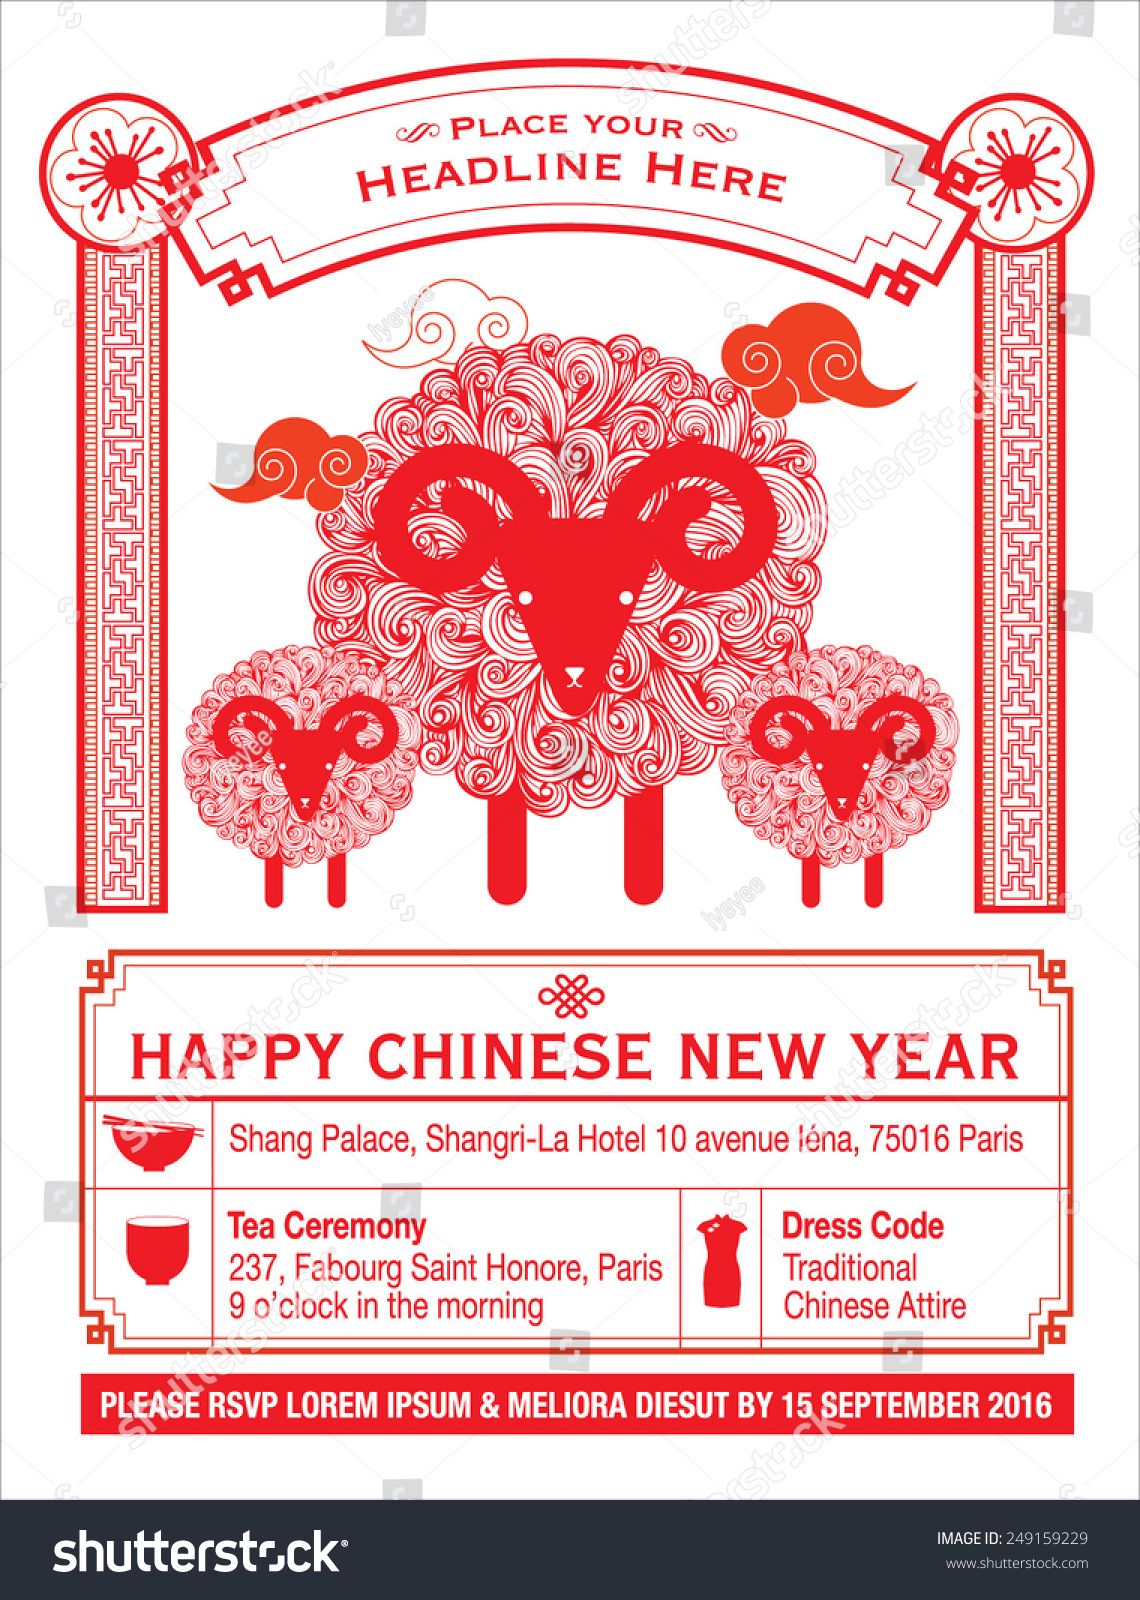 Chinese Calendar Illustration : Chinese calendar new year card stock vector